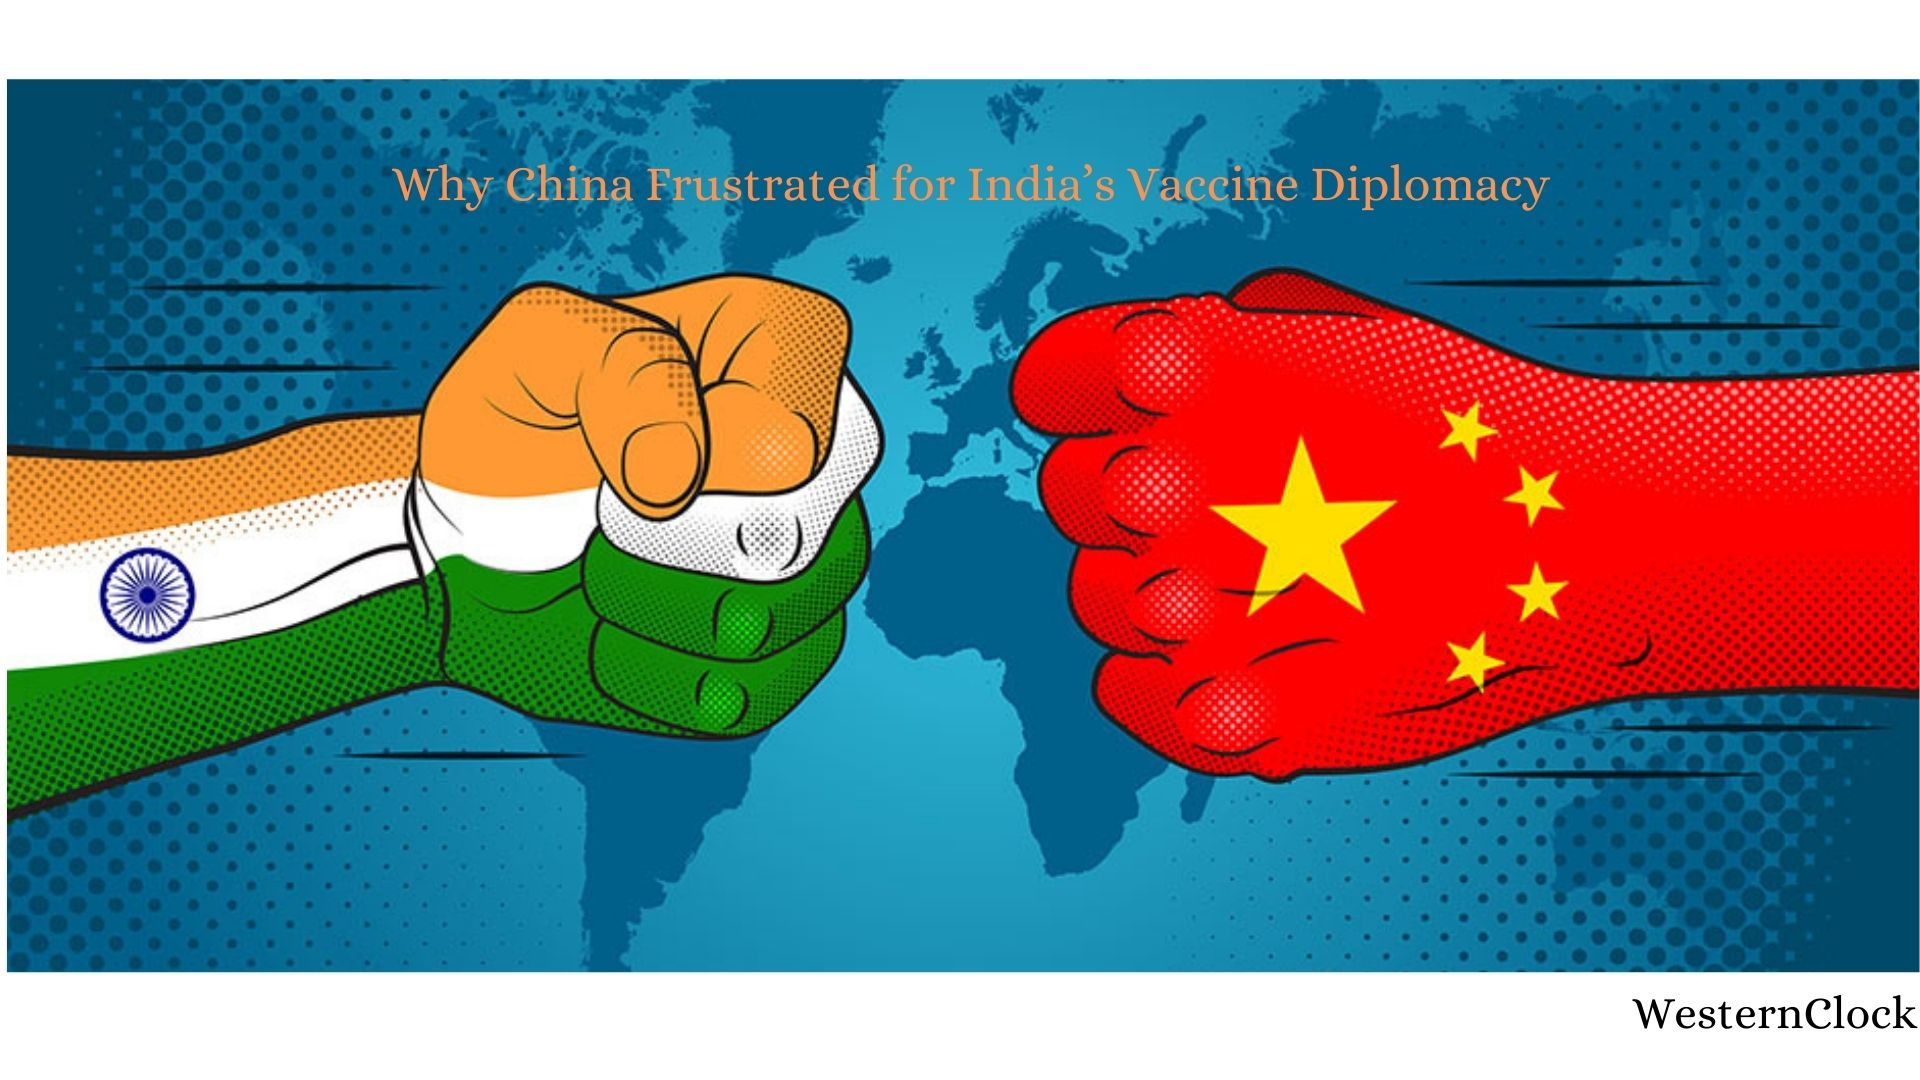 China Frustrated for India's Vaccine